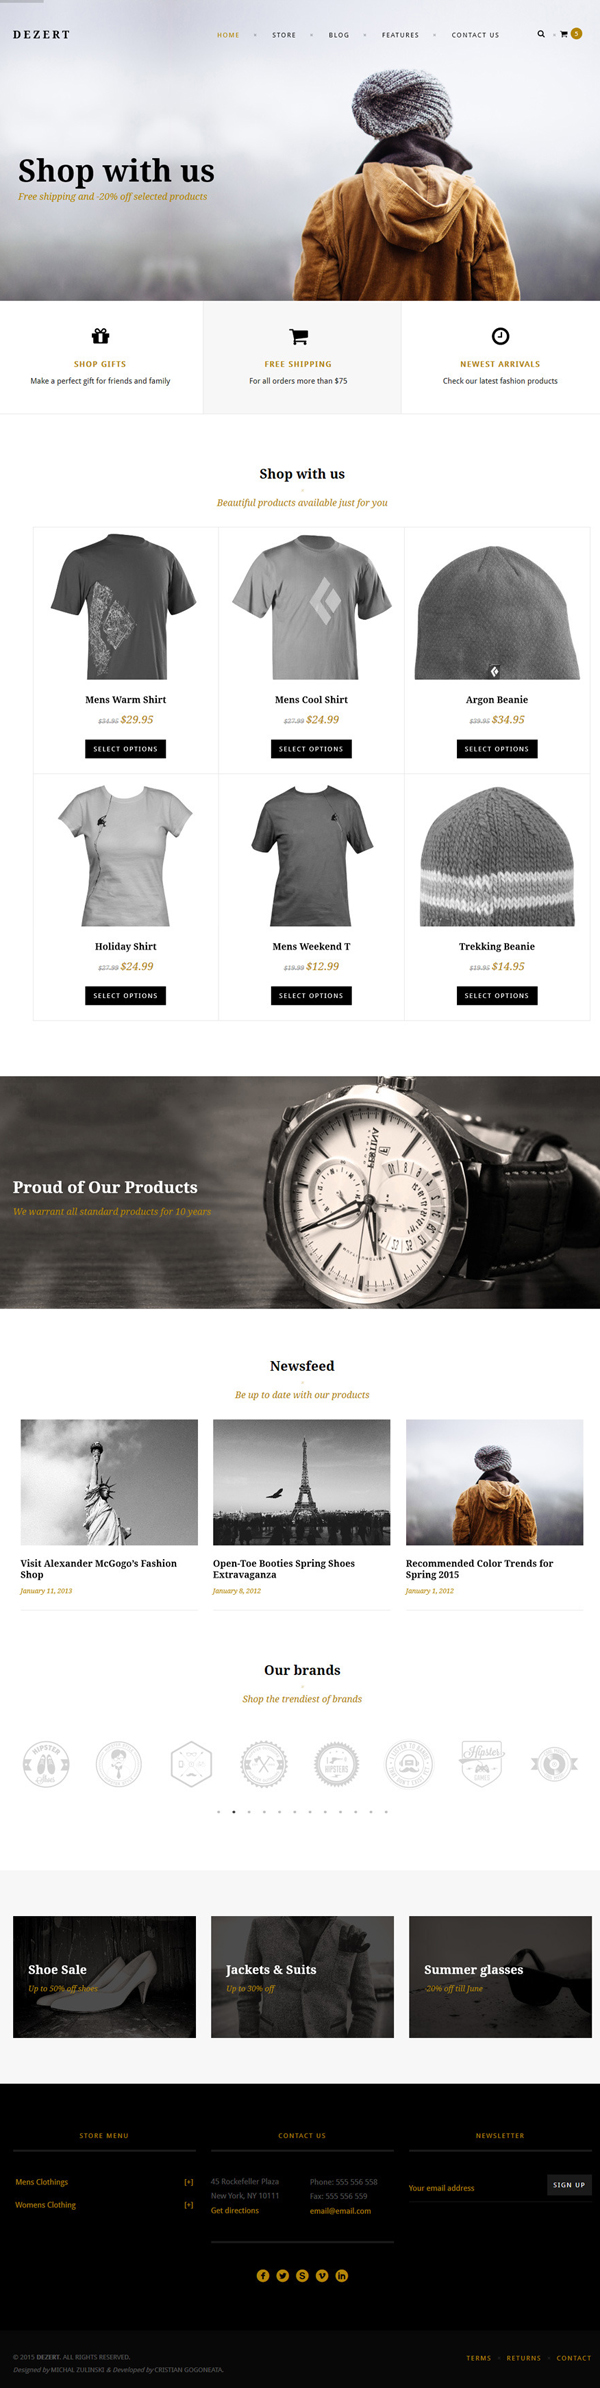 Dezert - WP EasyCart & WooCommerce Shopping Theme